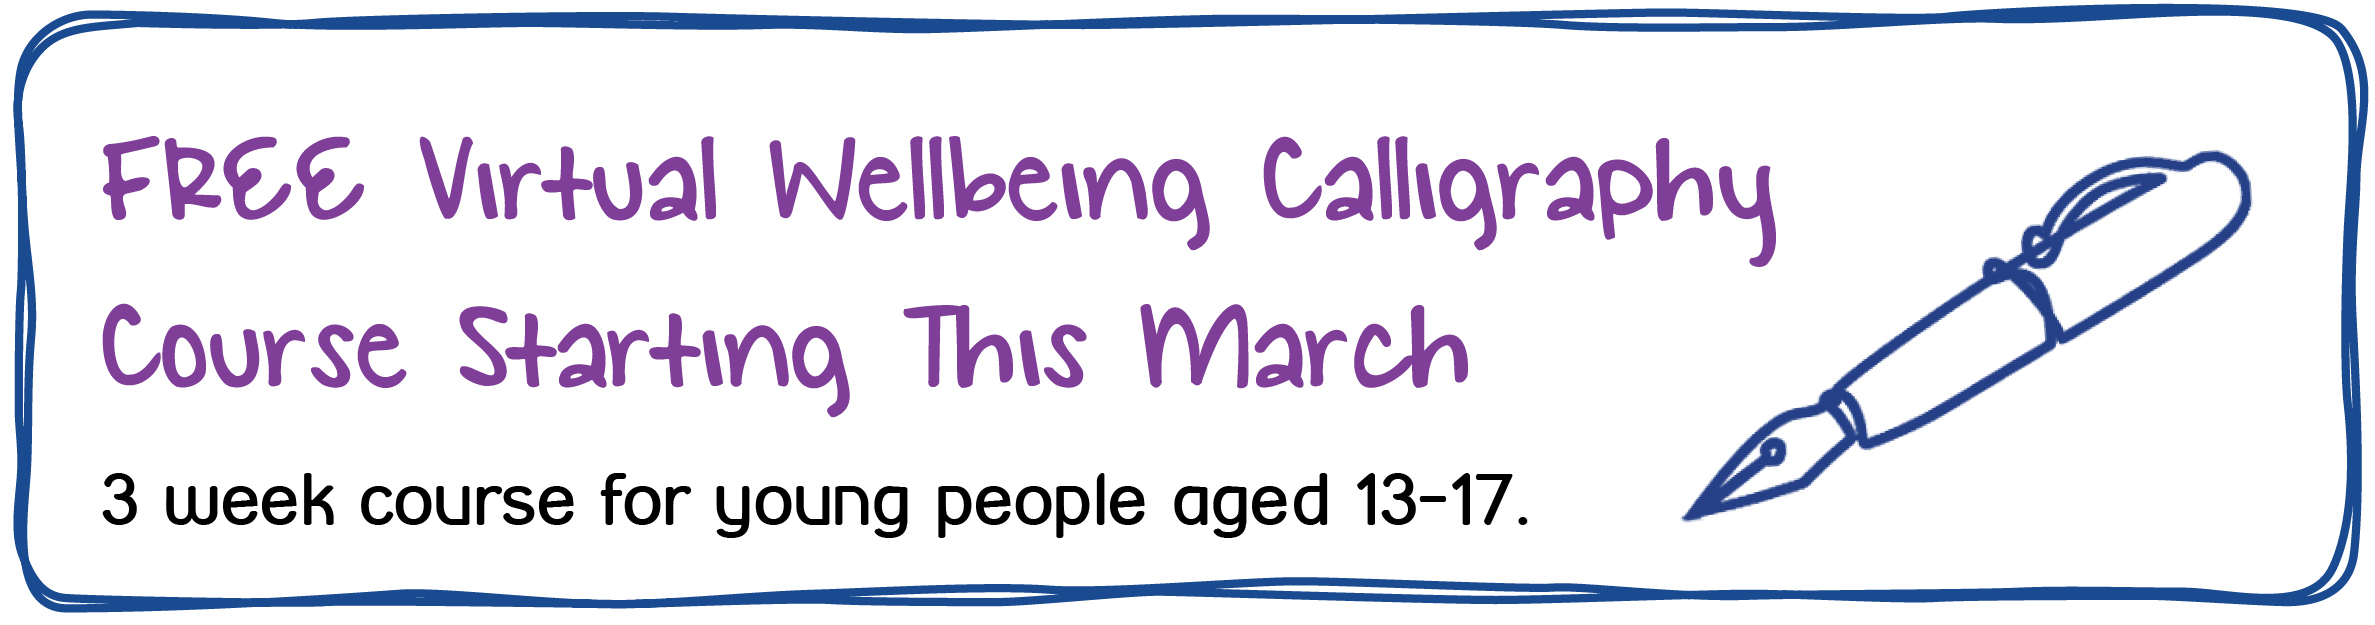 FREE Virtual Wellbeing Calligraphy Course Starting This March 3 week course for young people aged 13-17.